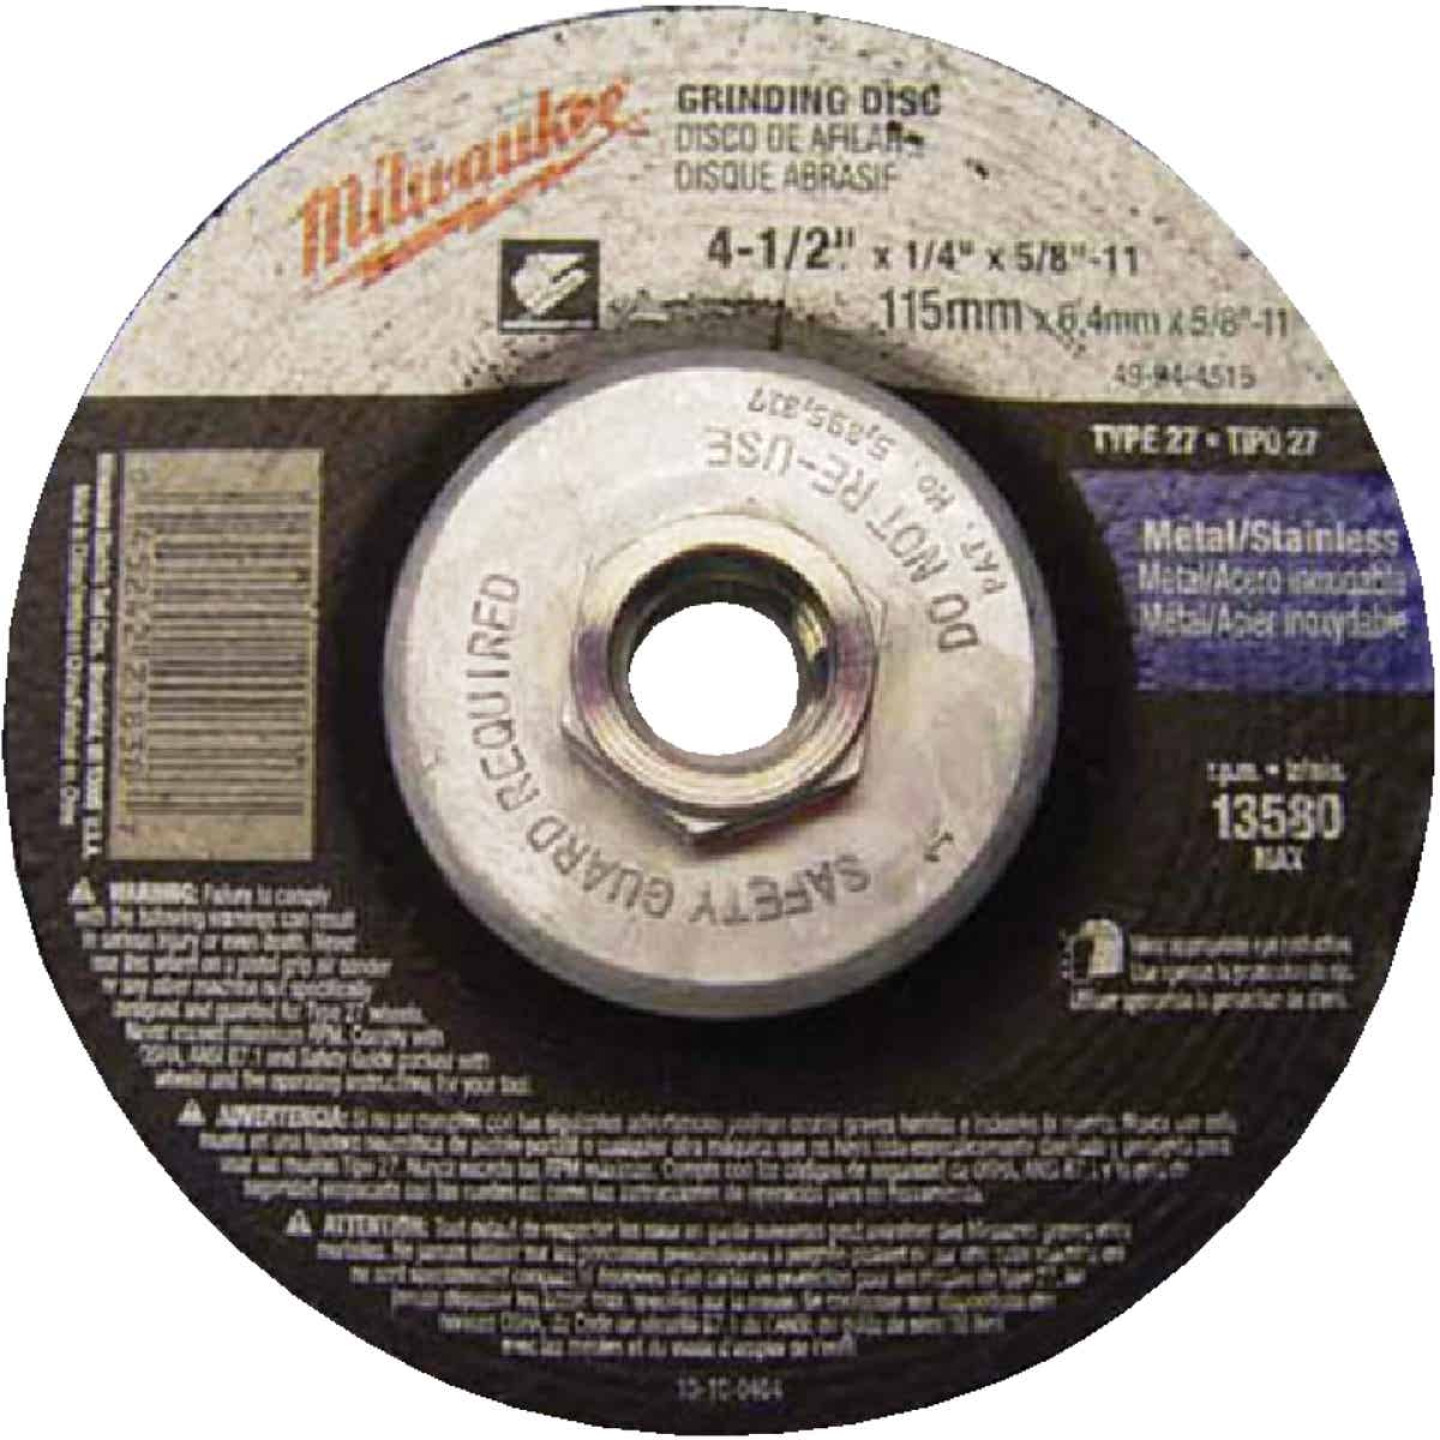 Milwaukee Type 27 4-1/2 In. x 1/4 In. x 5/8 In. Metal/Stainless Grinding Cut-Off Wheel Image 1